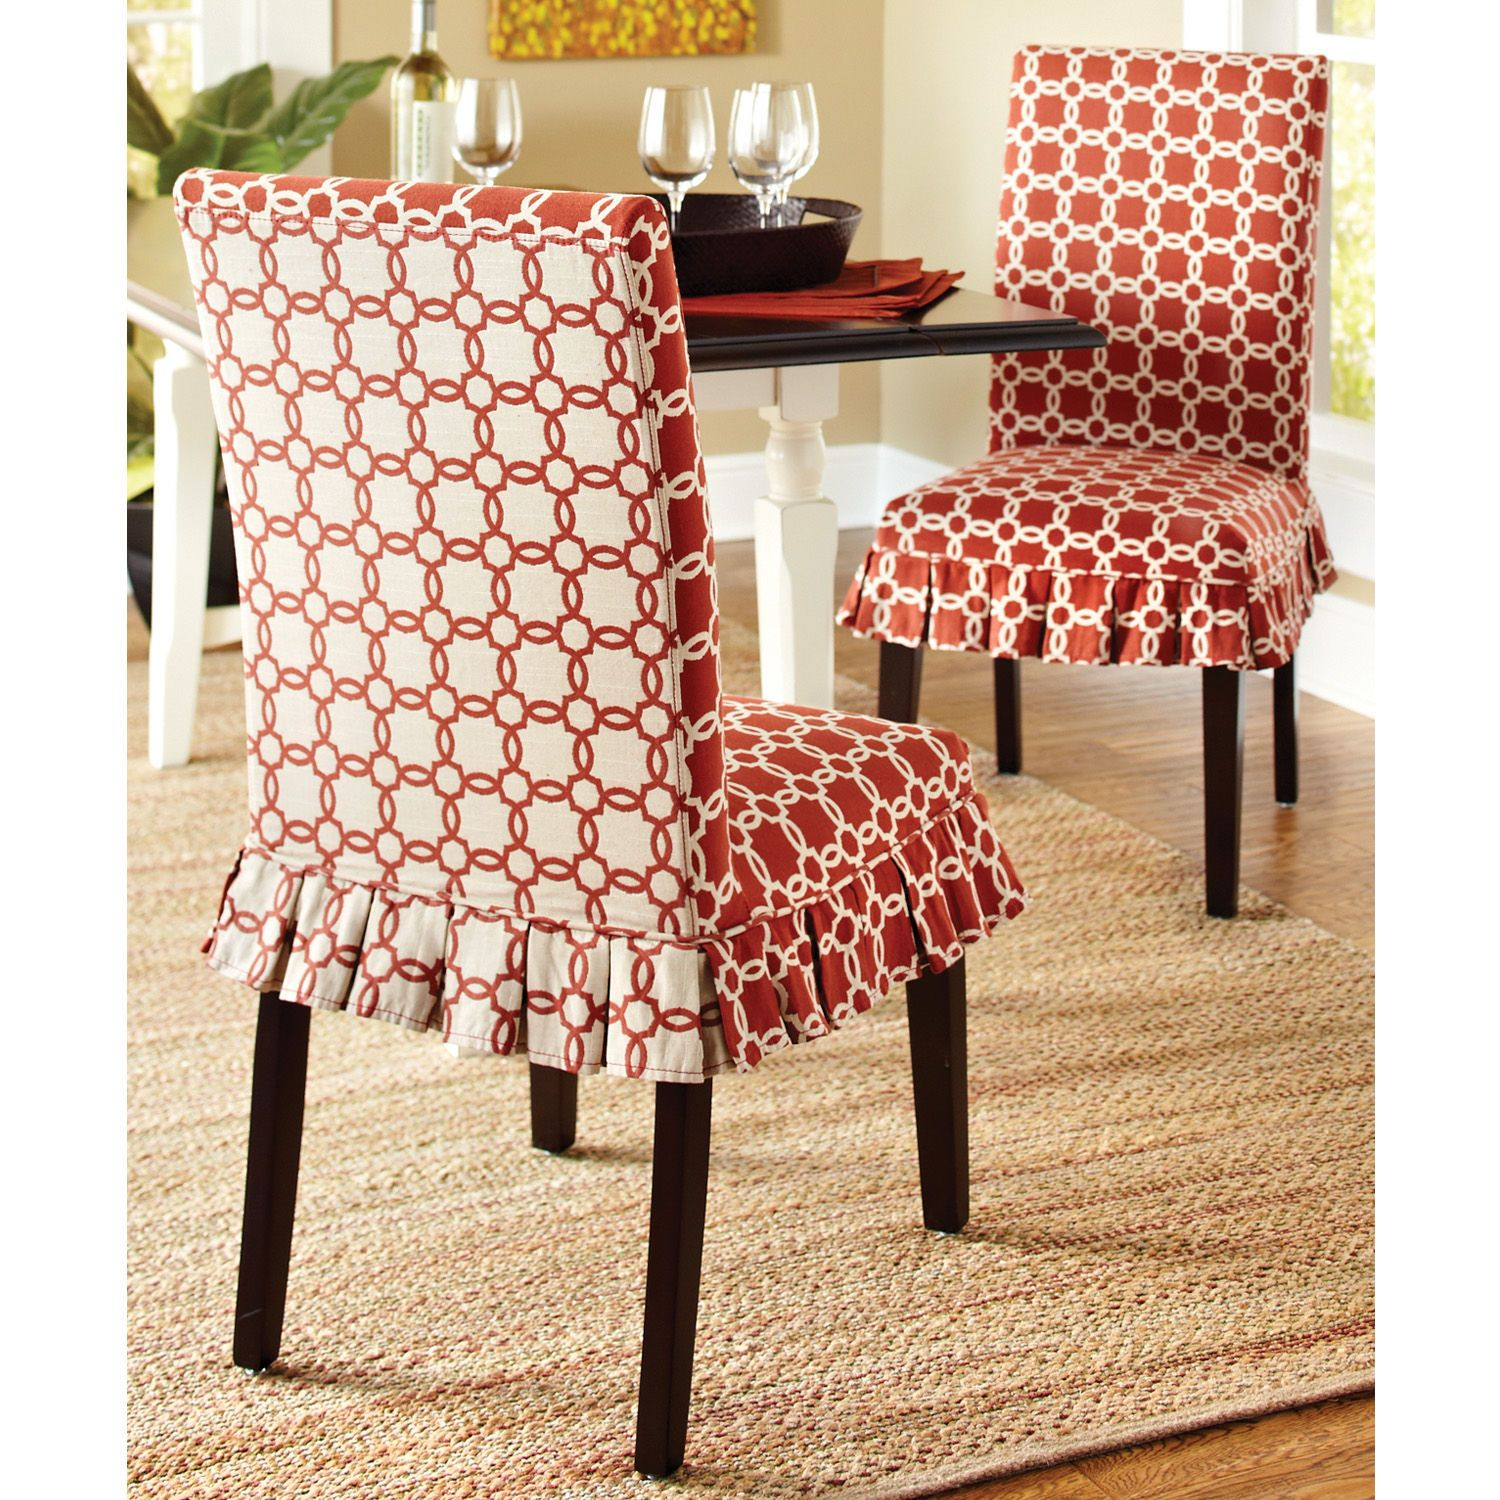 Incroyable How Fun Are These Slipcovers From Pier 1